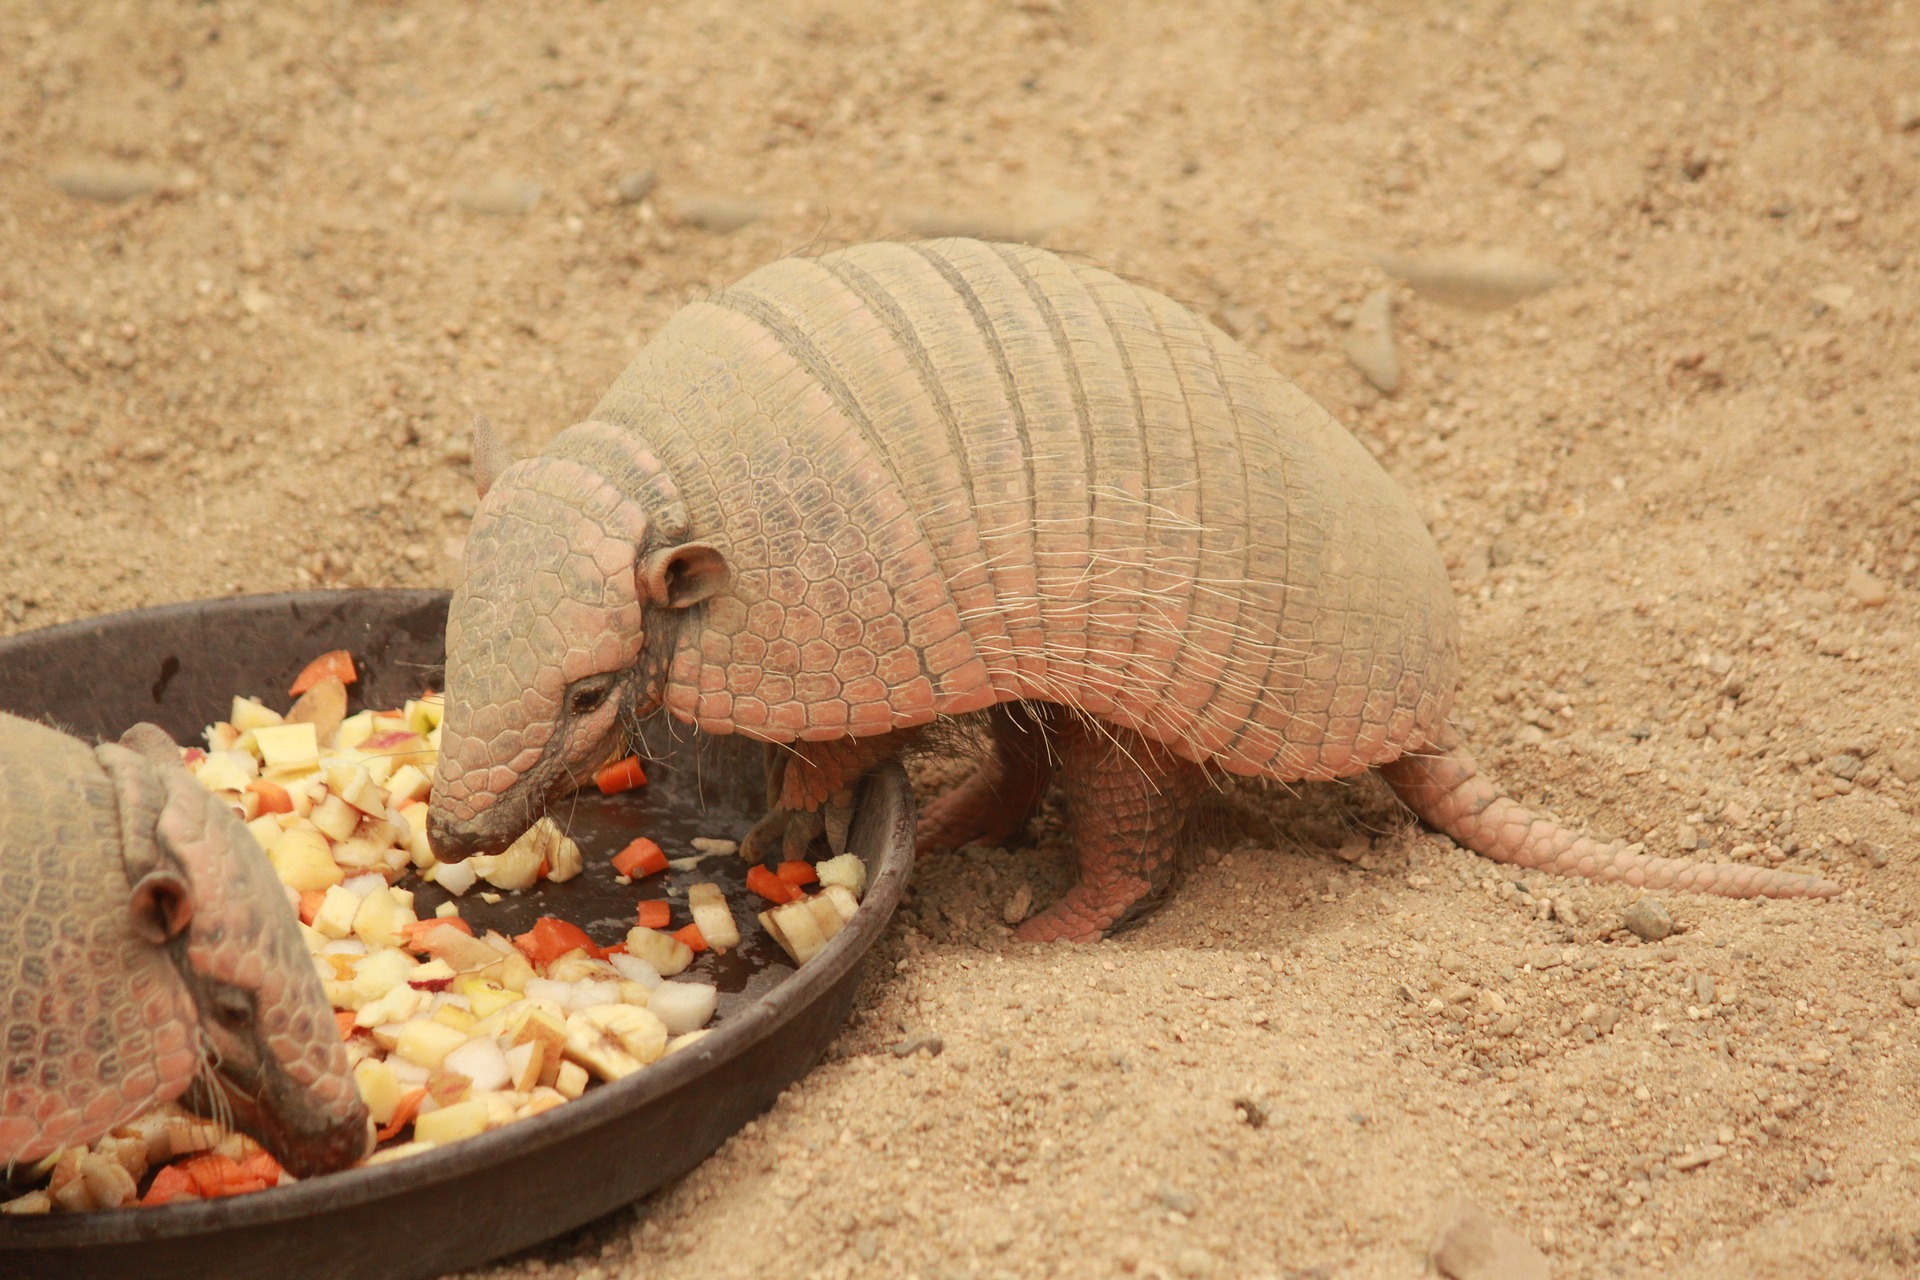 Five downloadable books about armadillos to read after your virtual zoo trip